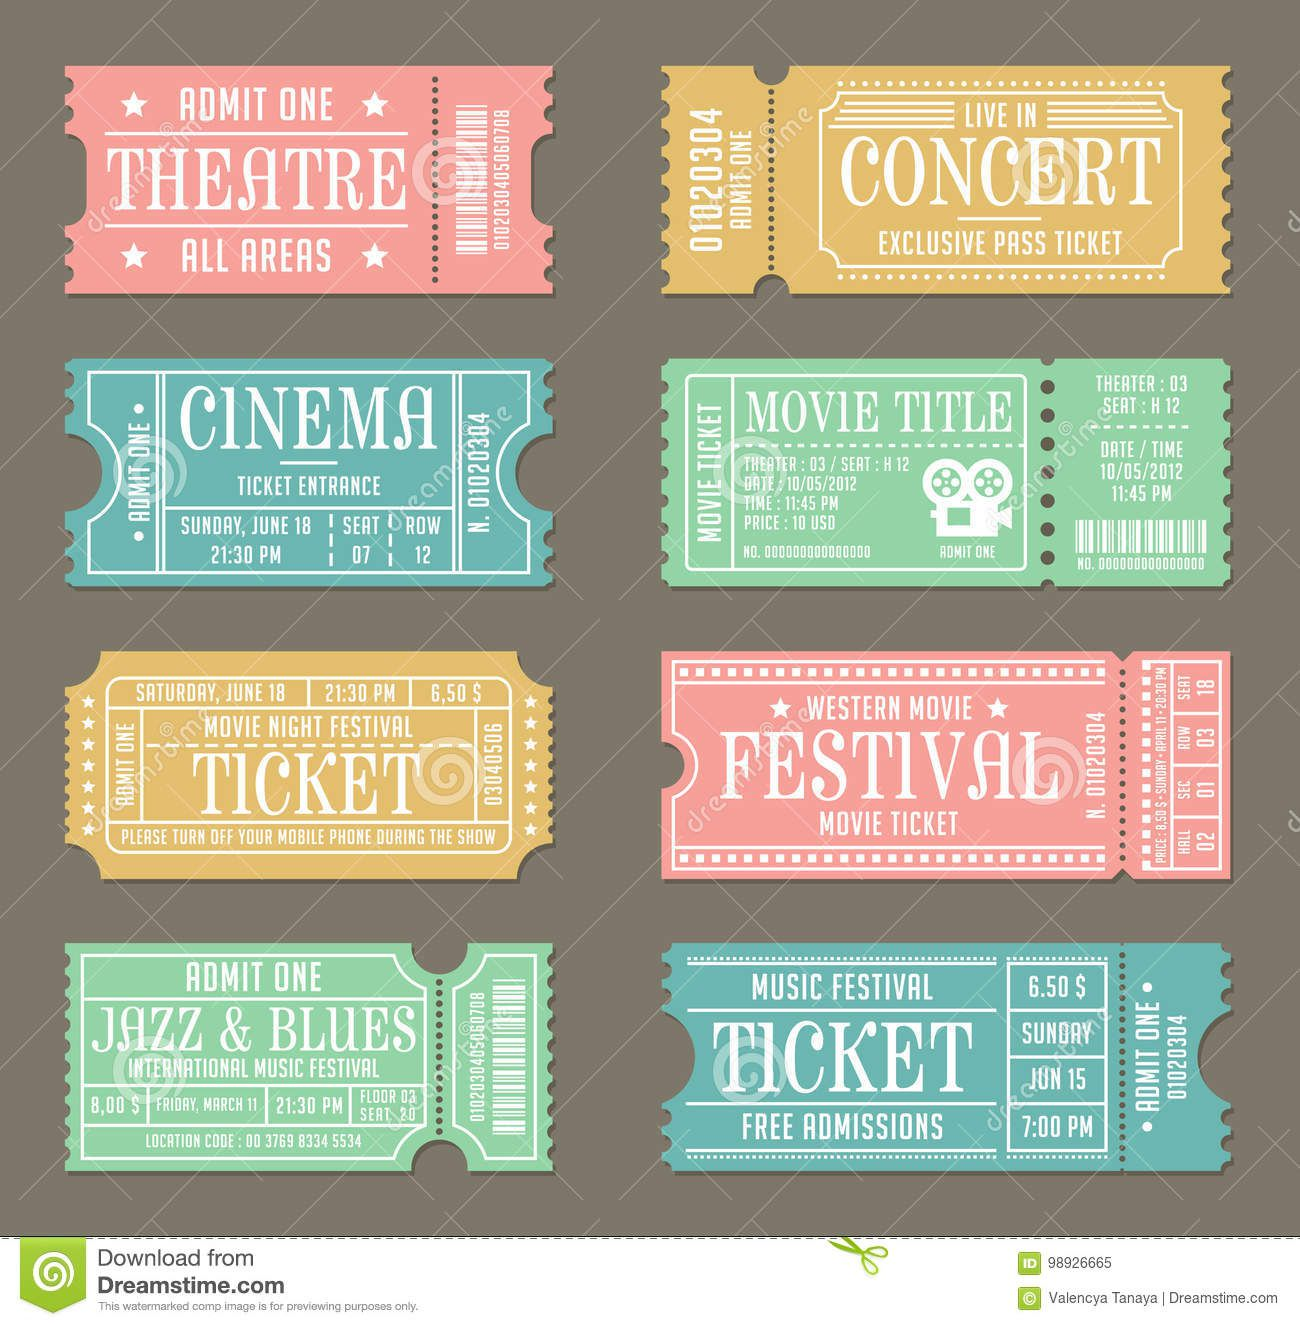 009 Impressive Vintage Concert Ticket Template Free Download Image Full